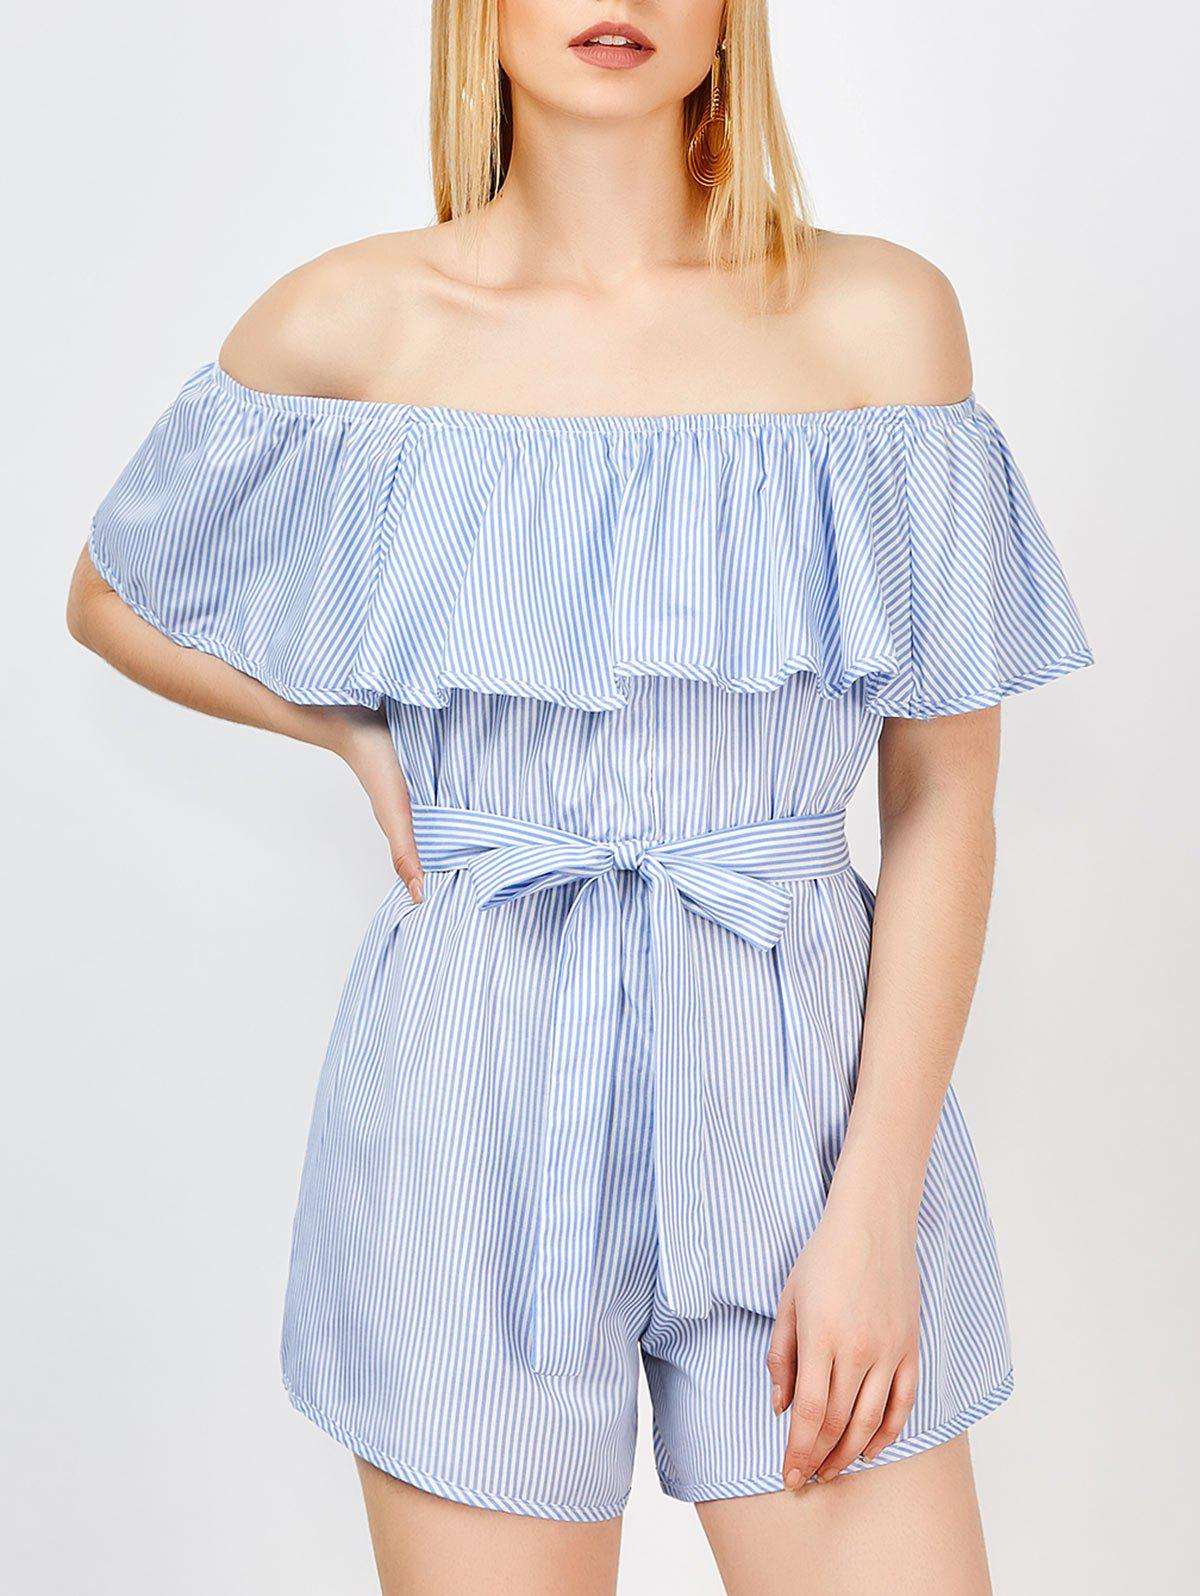 Discount Off The Shoulder Ruffle Stripe Pants Romper